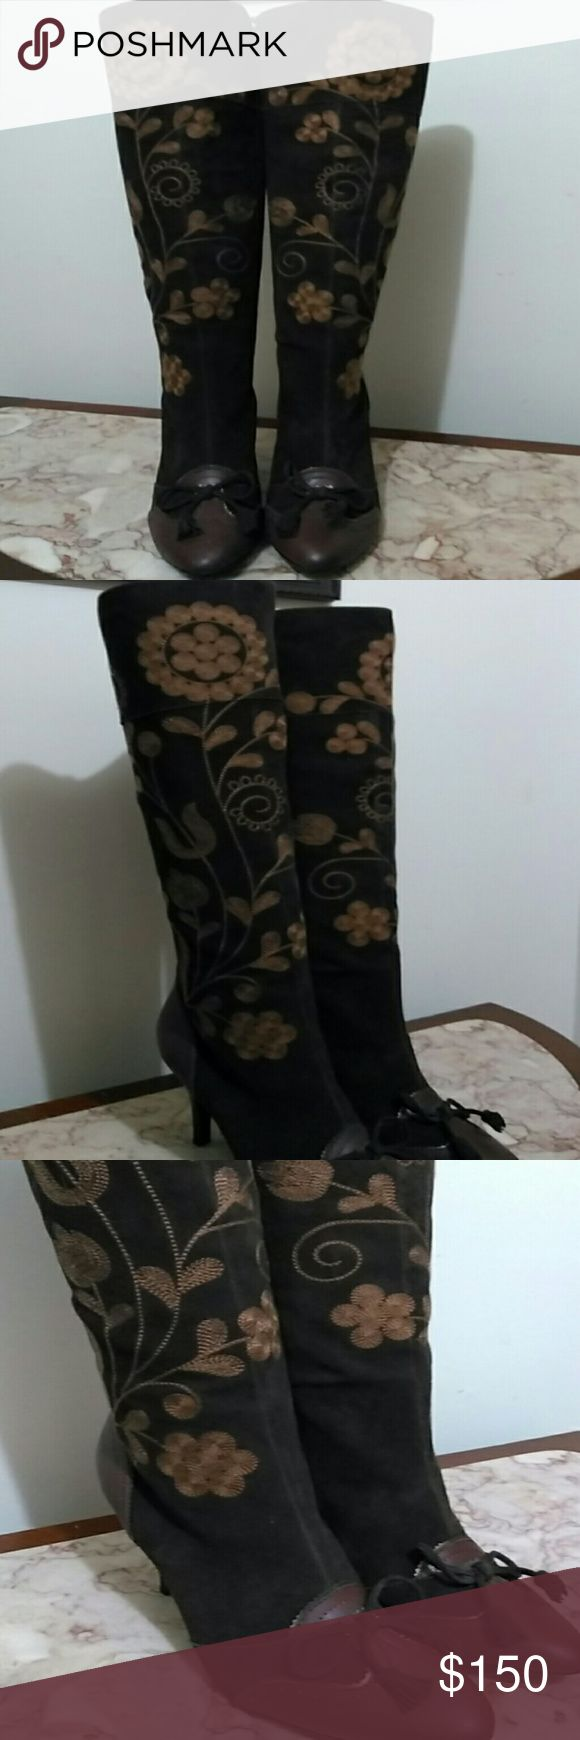 Sam Edelmam Knee High Country Boot This 2-inch heel boot is made of a soft suede and is NIB and TTS. Sam Edelman Shoes Heeled Boots